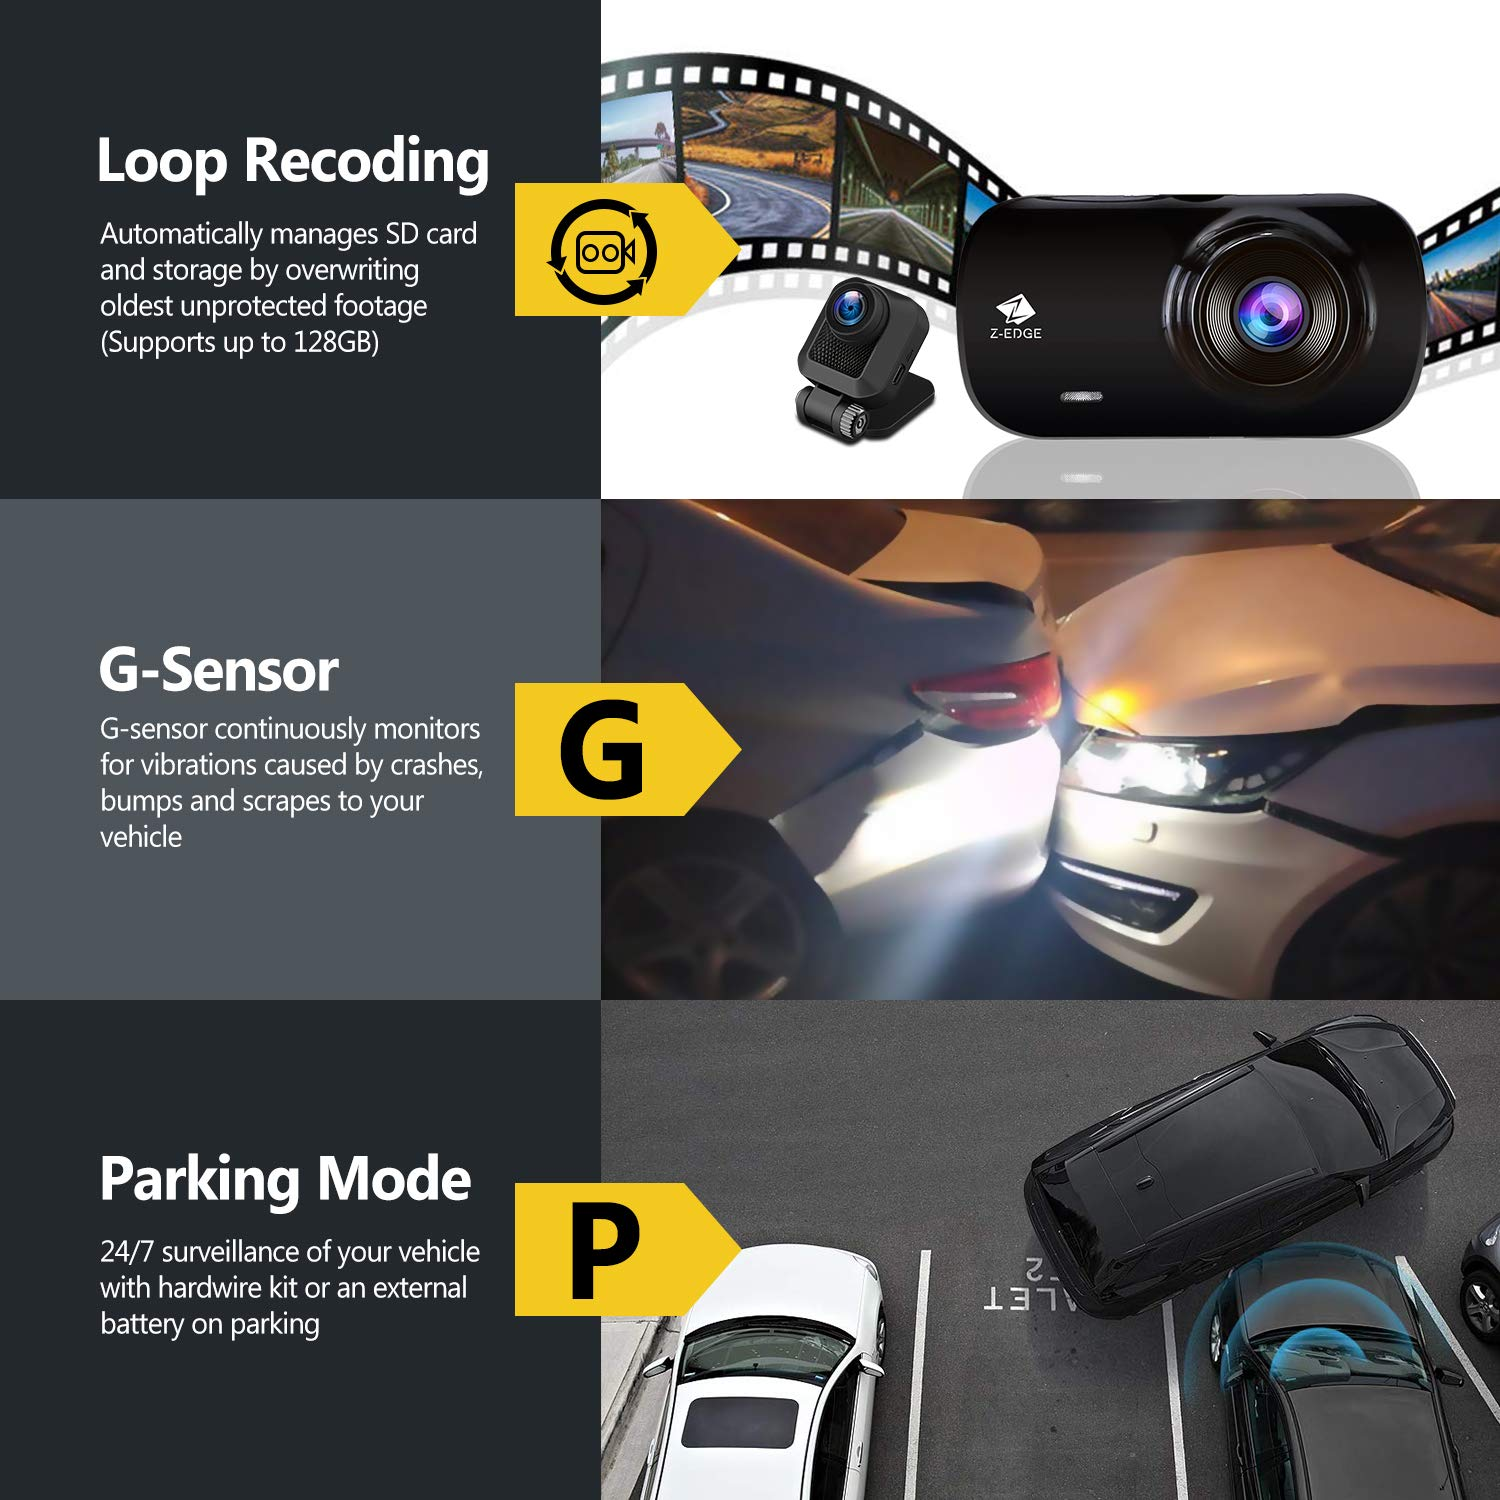 Z-Edge Z3D Dual Lens Dash Cam, 2.7'' Screen Ultra HD 1440P Front & 1080P Rear 150 Degree Wide Angle Front and Rear Dash Cam, Dashboard Camera with GPS, WDR, Low Light Vision, Parking Mode, G-Sensor by Z Z-Edge (Image #6)